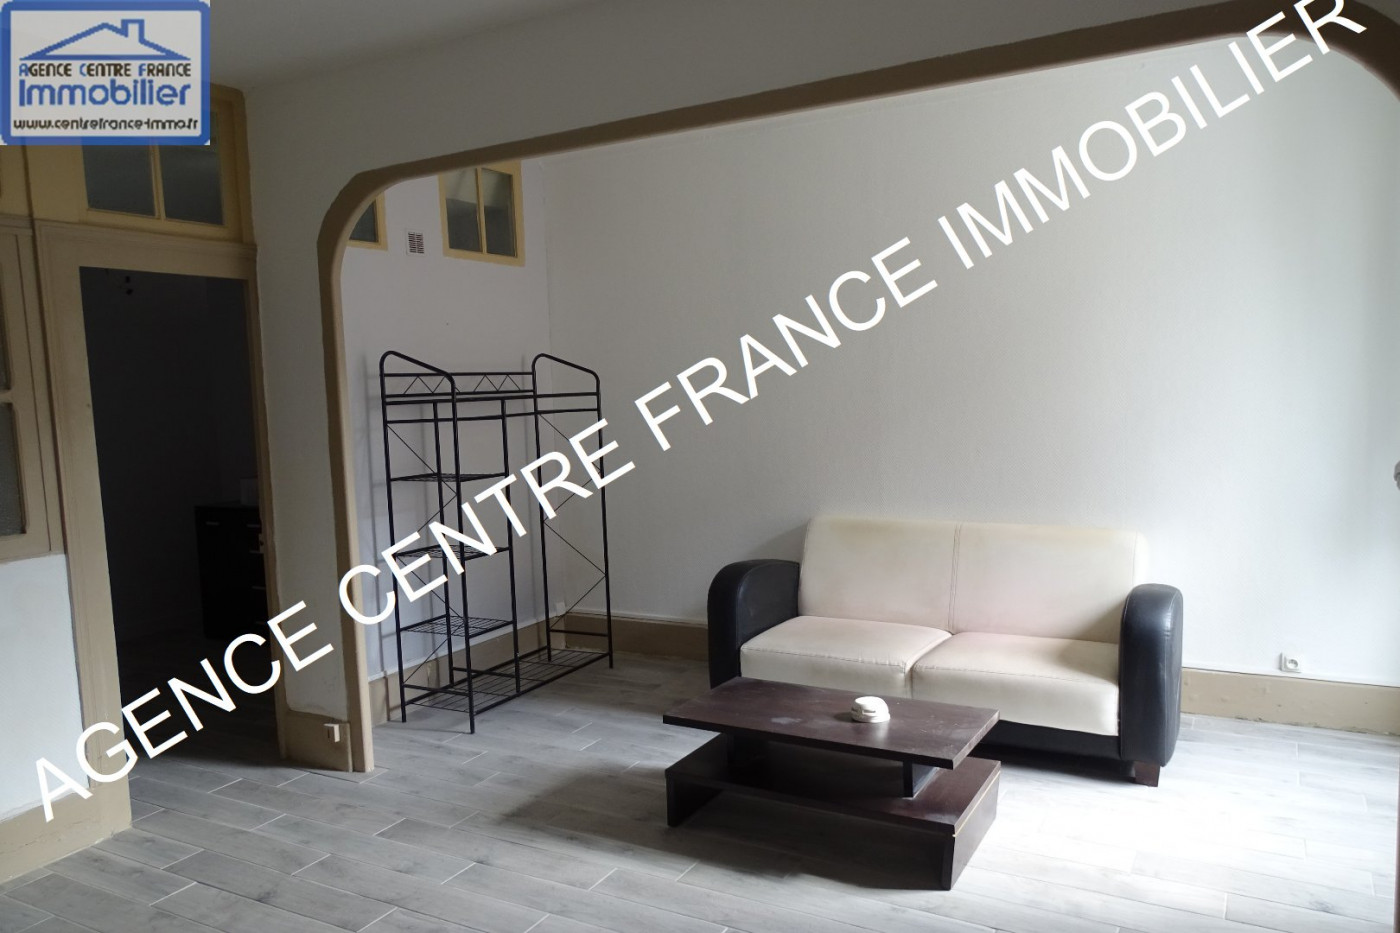 A vendre Bourges 030011192 Agence centre france immobilier